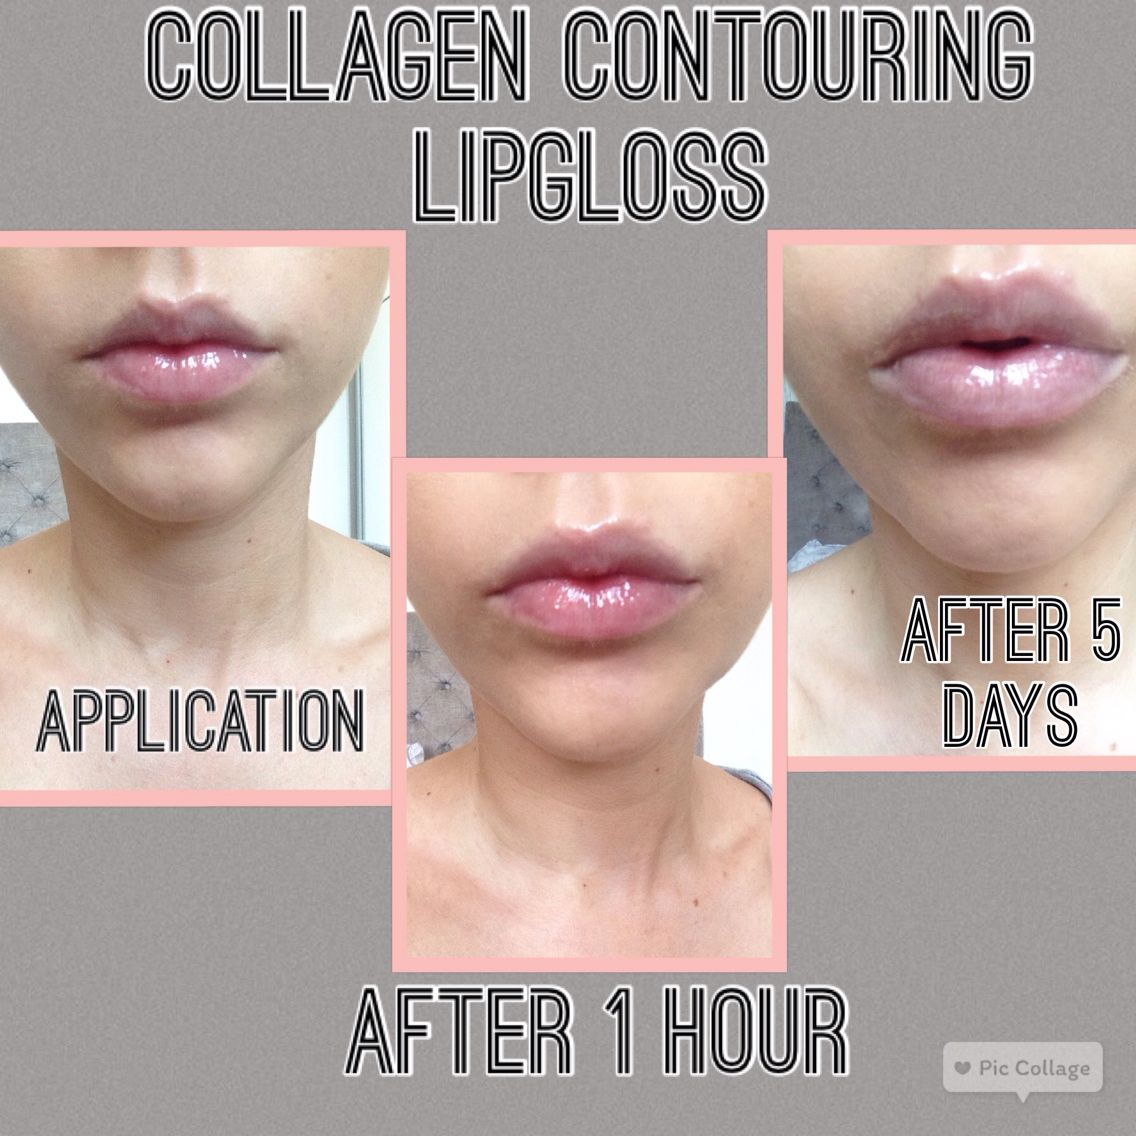 Collagen Contouring Lipgloss Enhancing The Natural Collagen In Your Lips No Needles No Stinging Plumper L Contouring Lip Gloss Diy Lip Plumper Lip Plumper